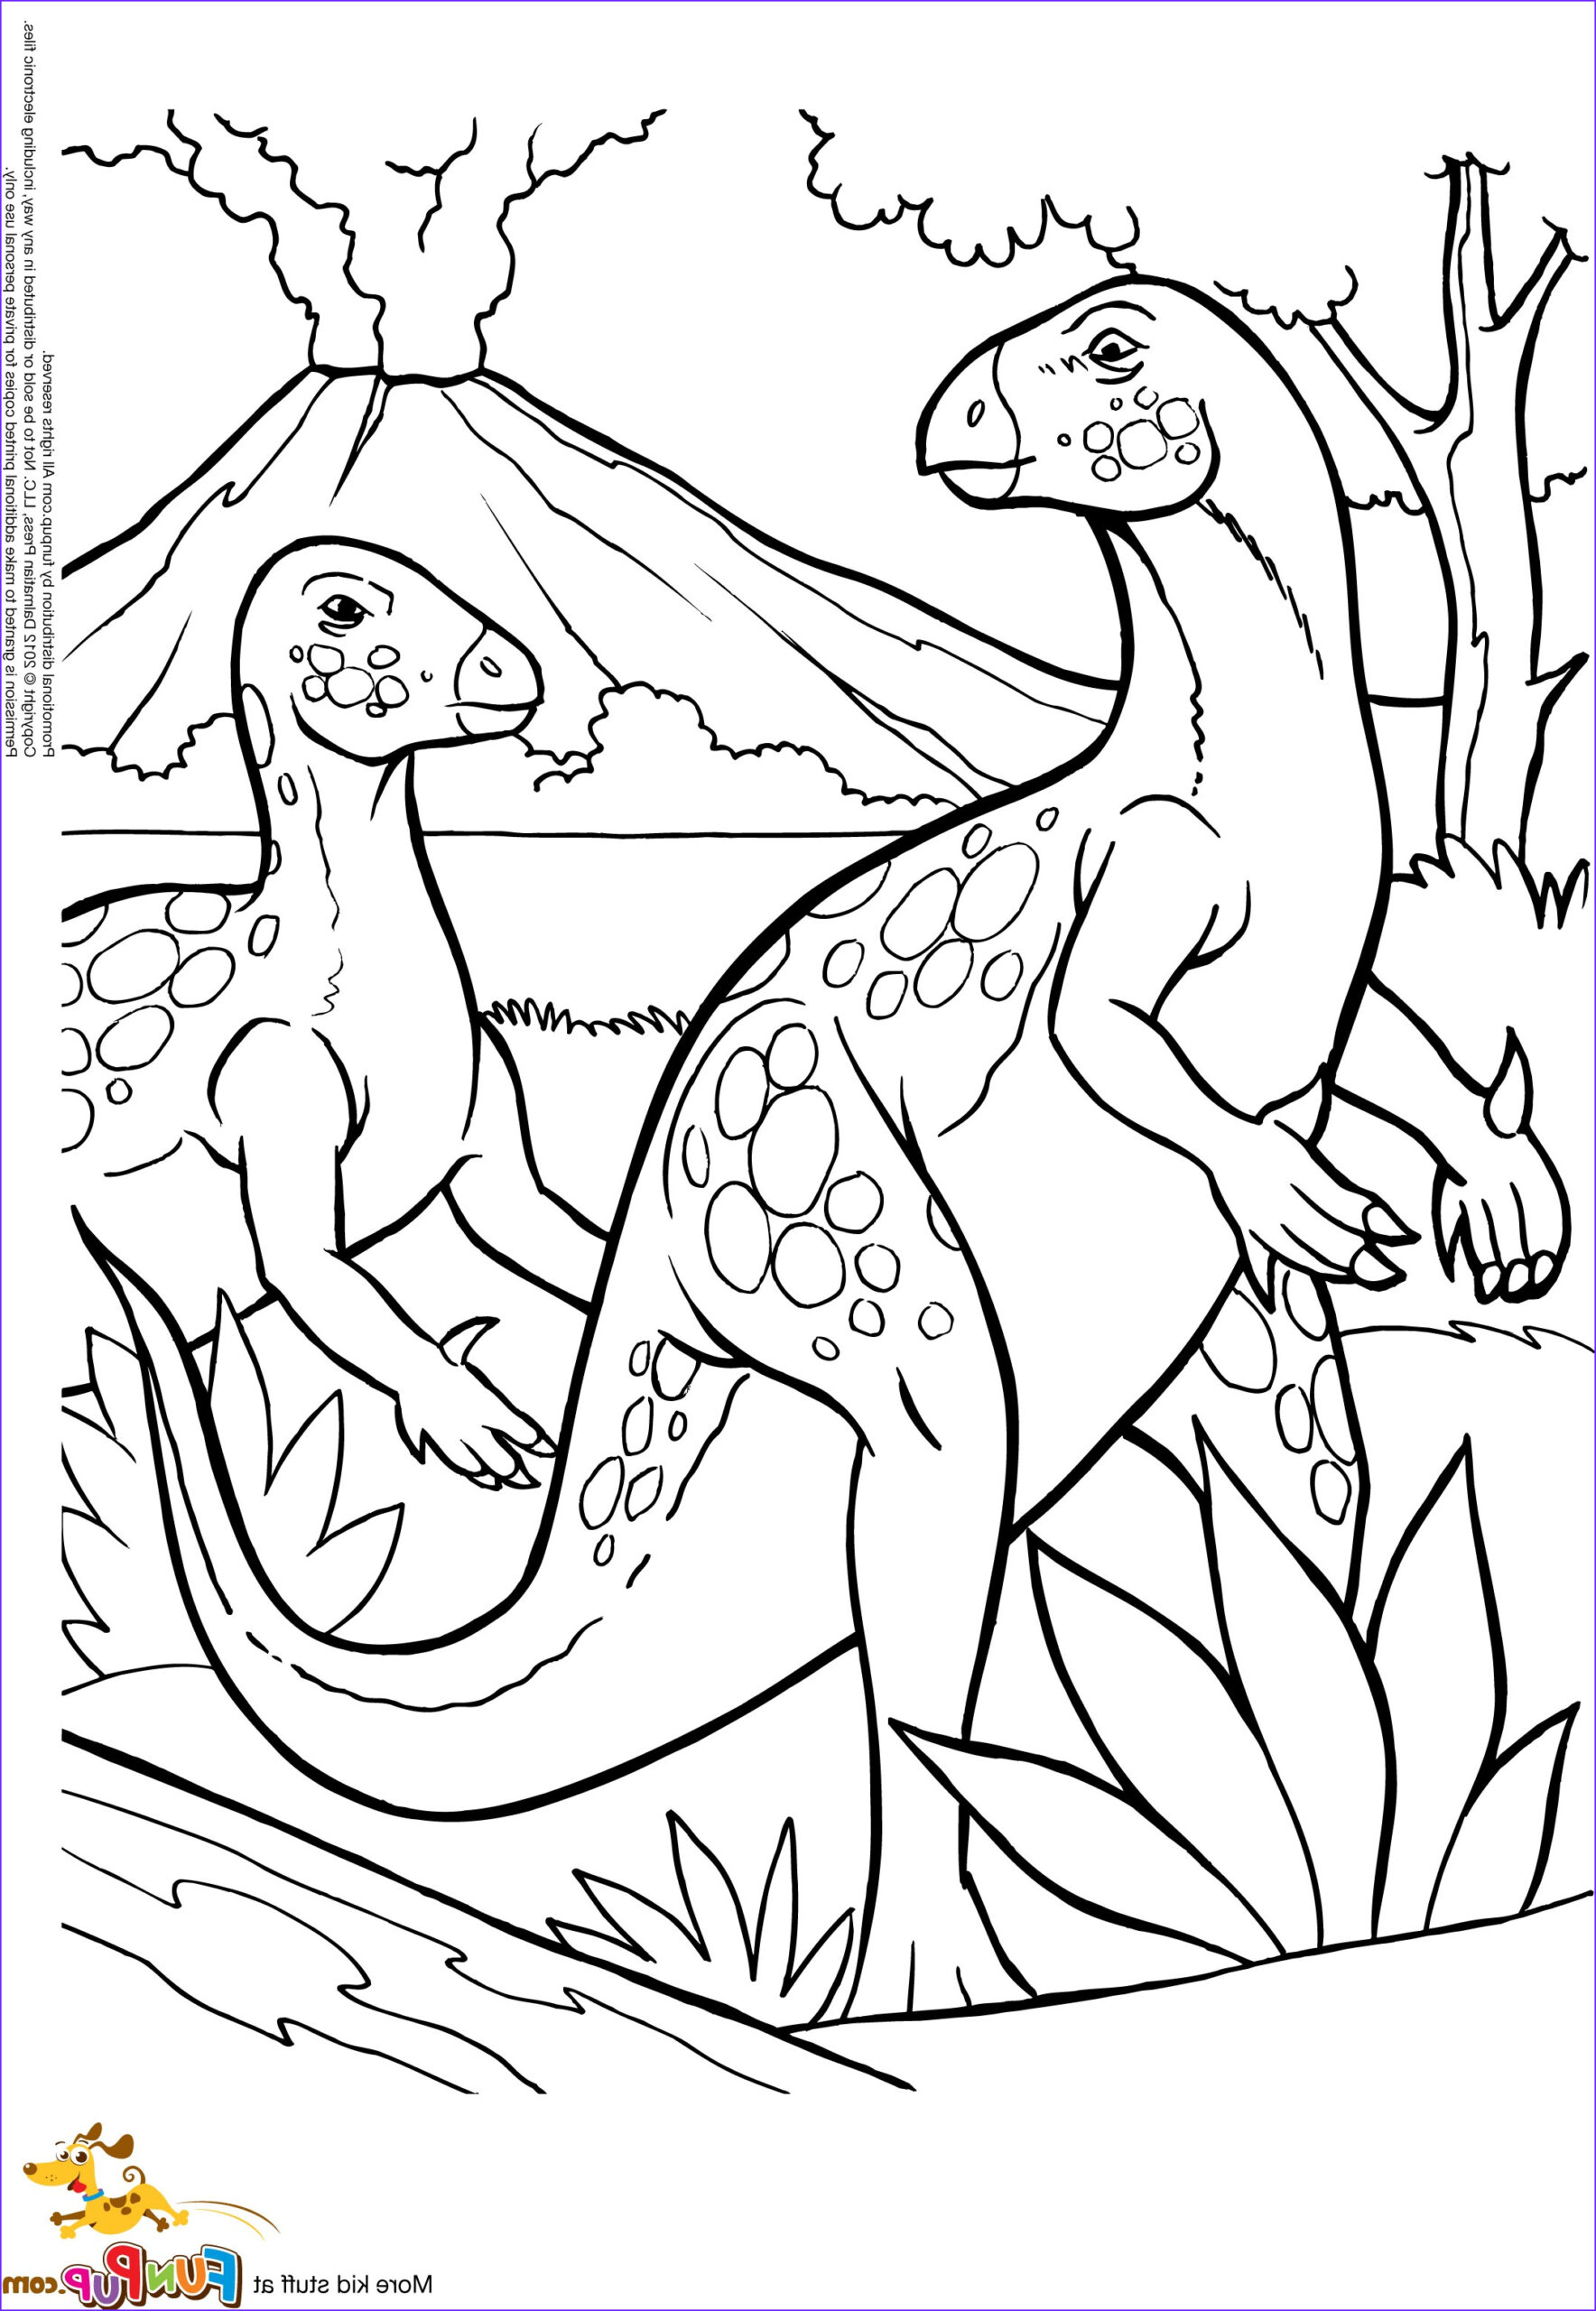 Fun Coloring Pages Beautiful Photography Volcano Coloring Pages for Kids Coloring Home